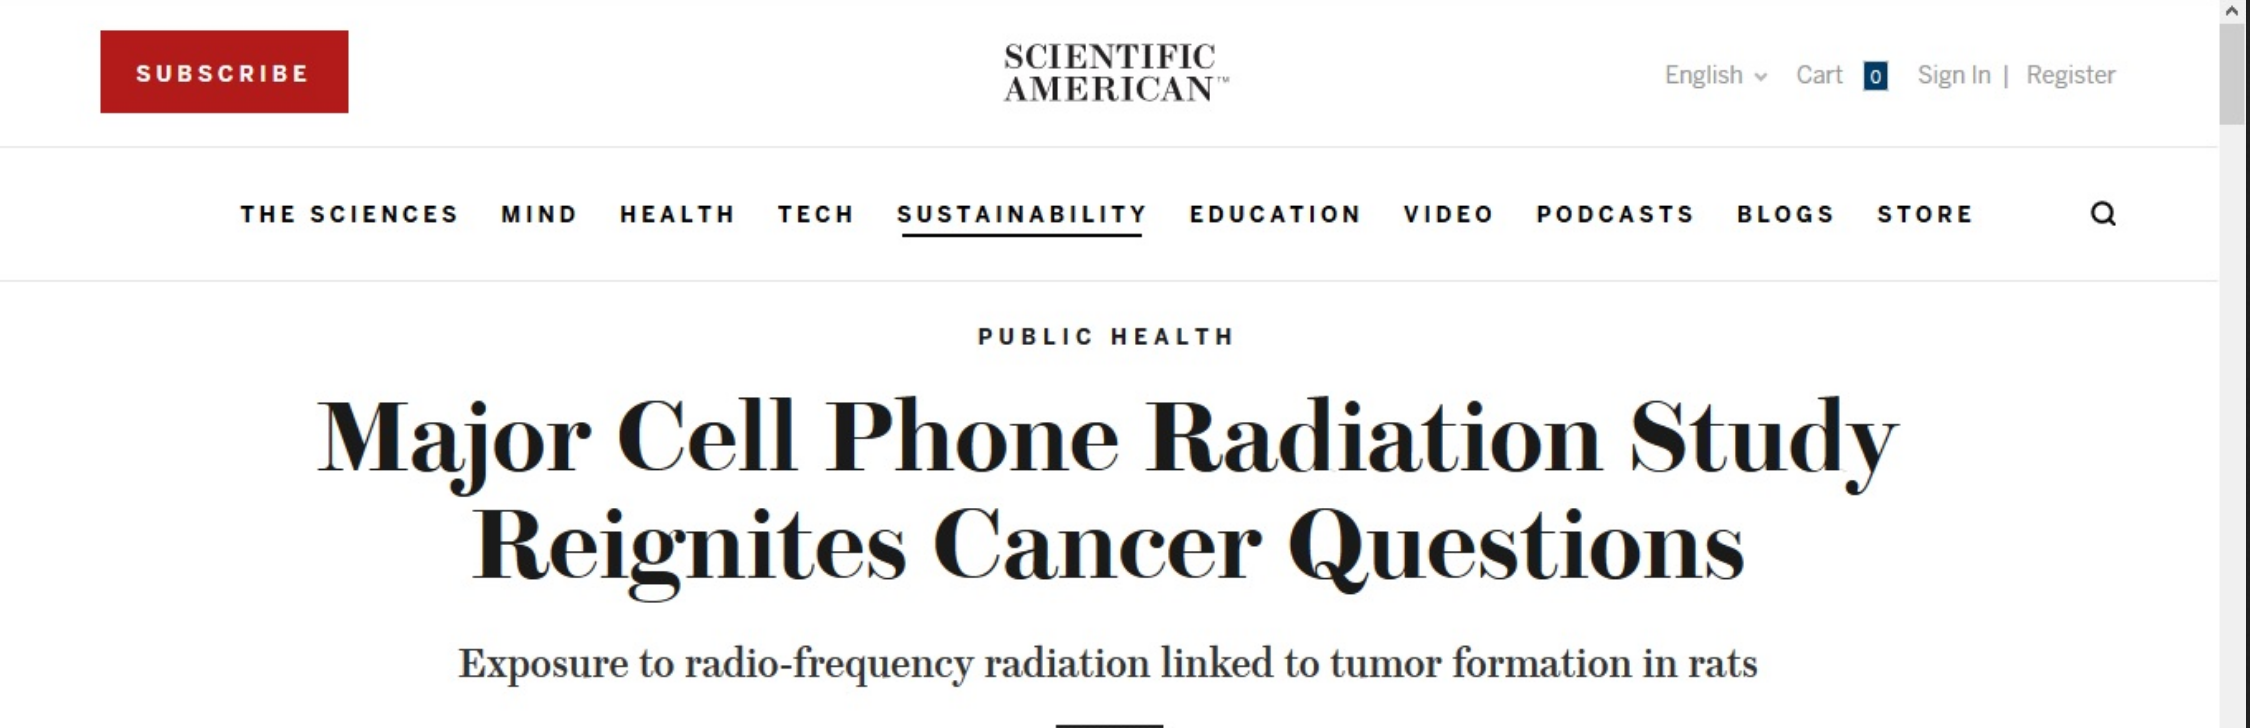 Clear Evidence of Brain and Heart Tumors from Cell Phone